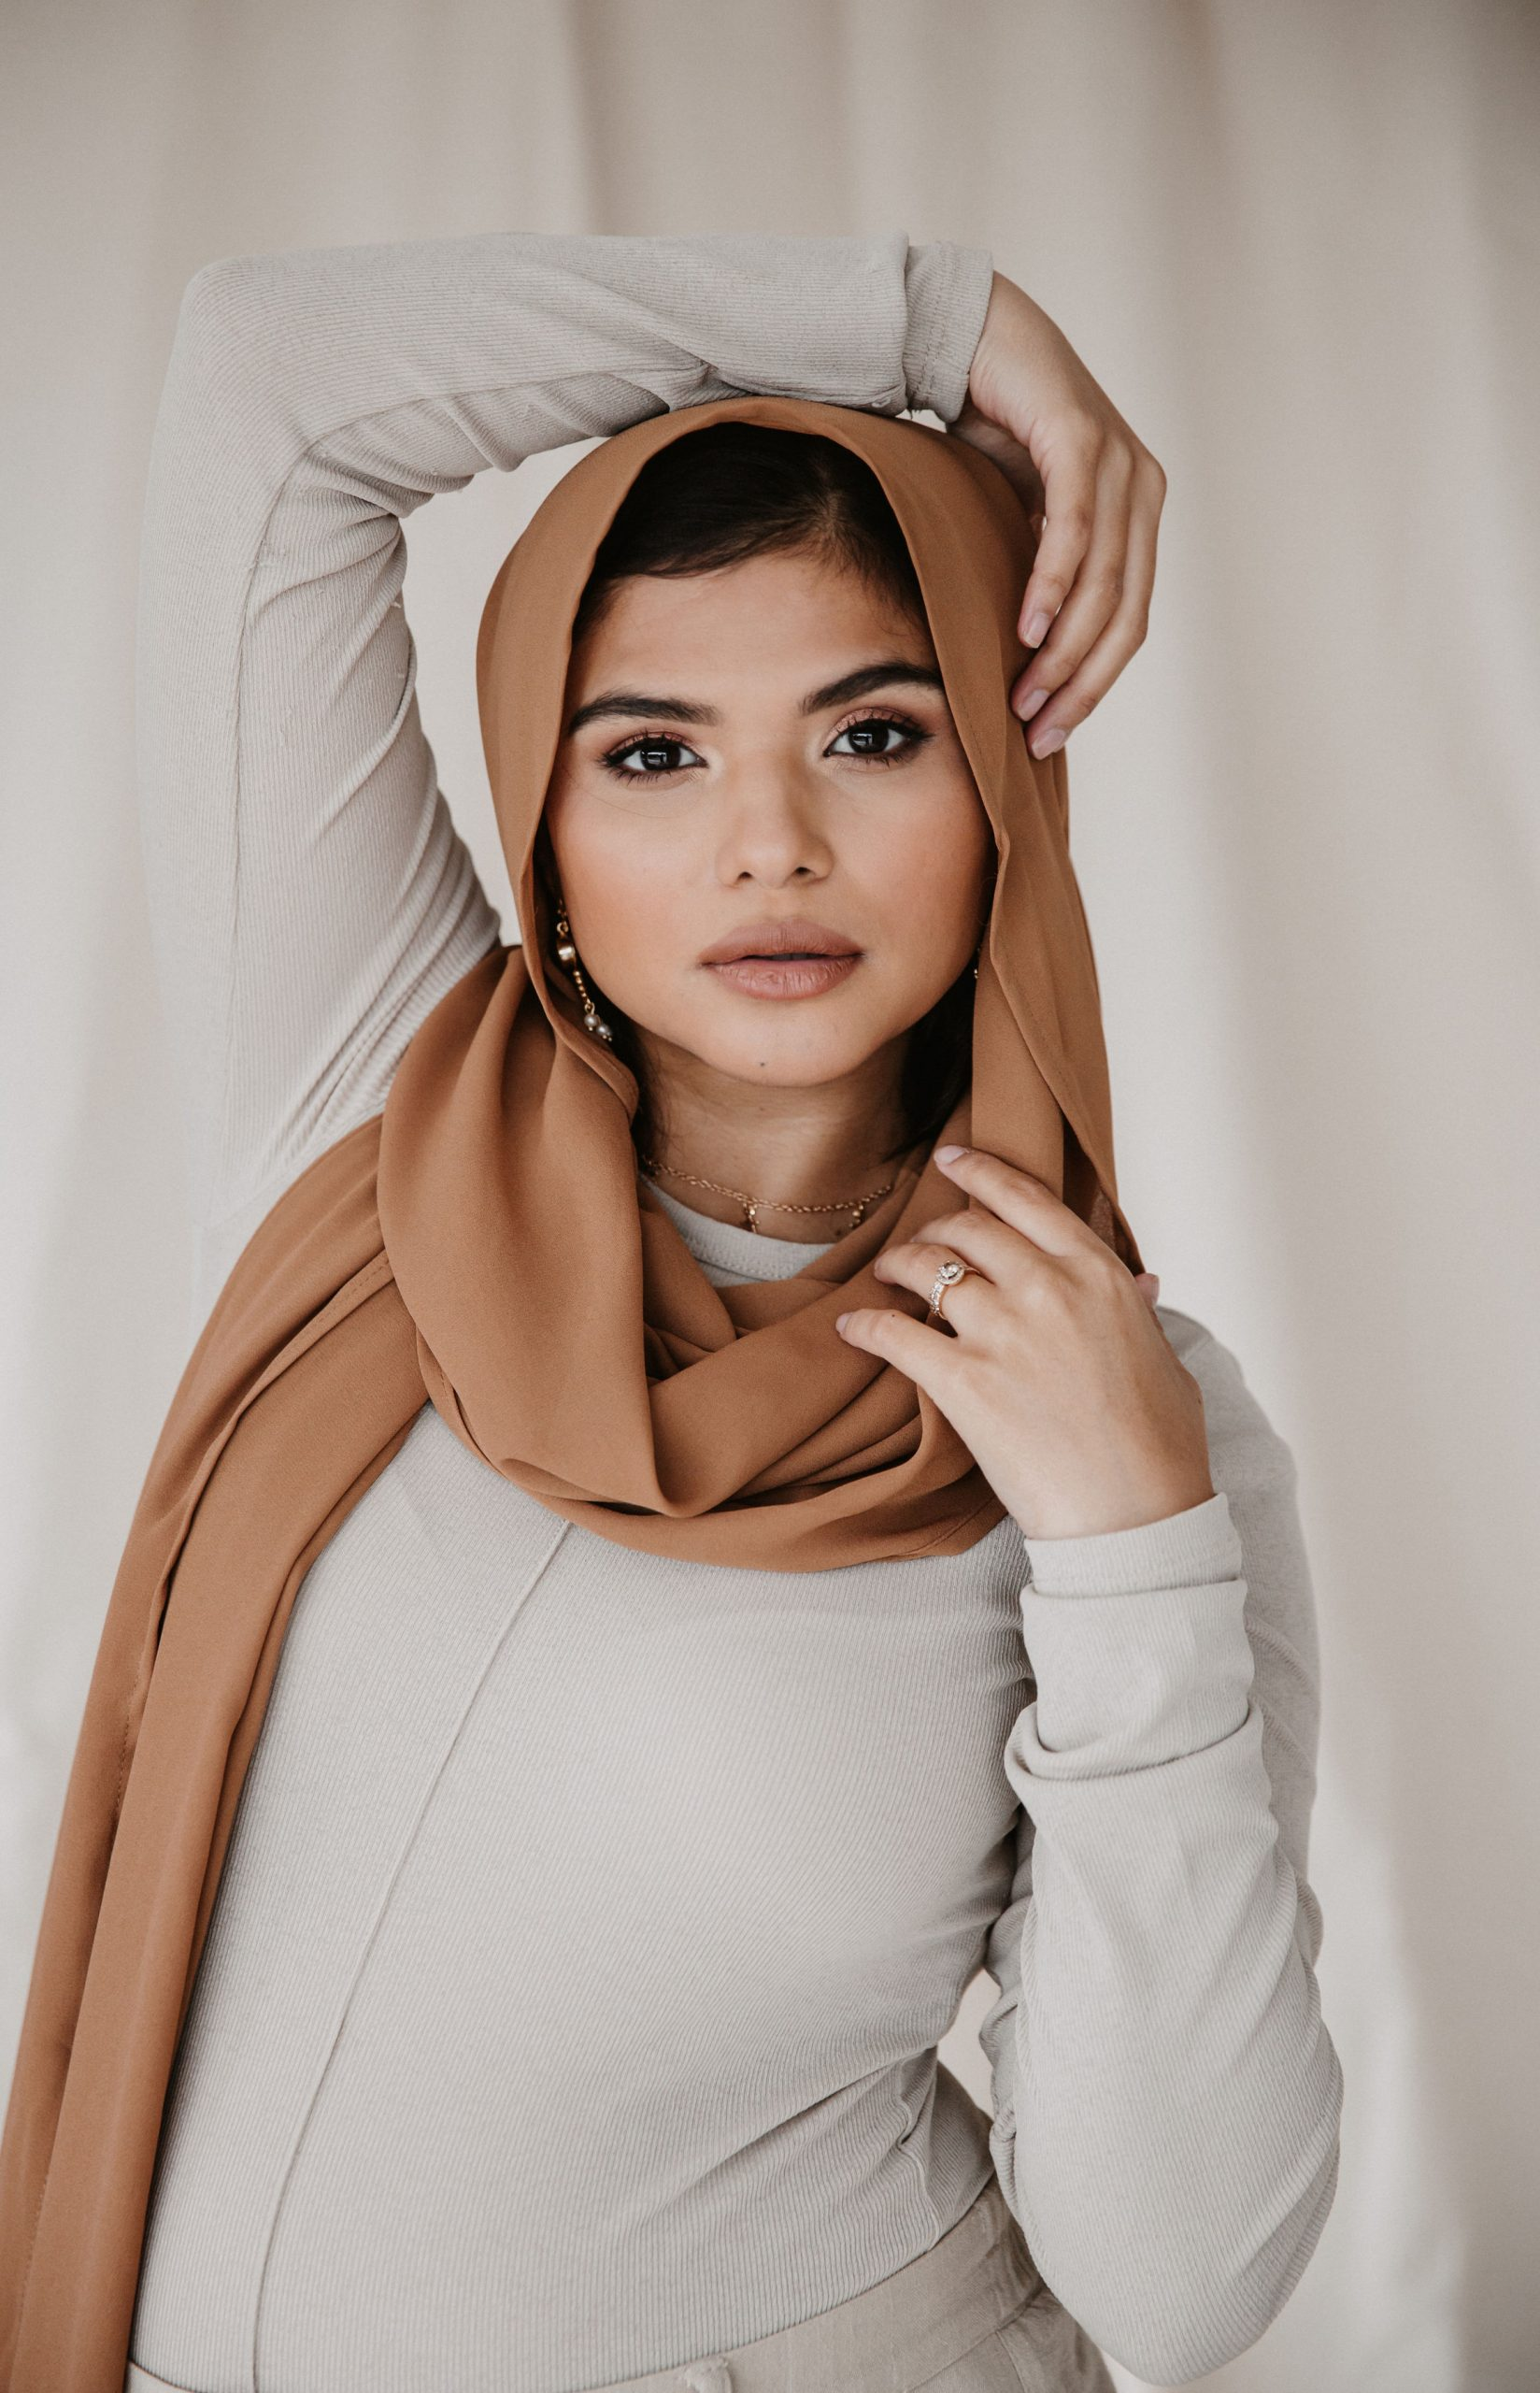 Eid Shopping Guide: Muslim POC Brands To Support